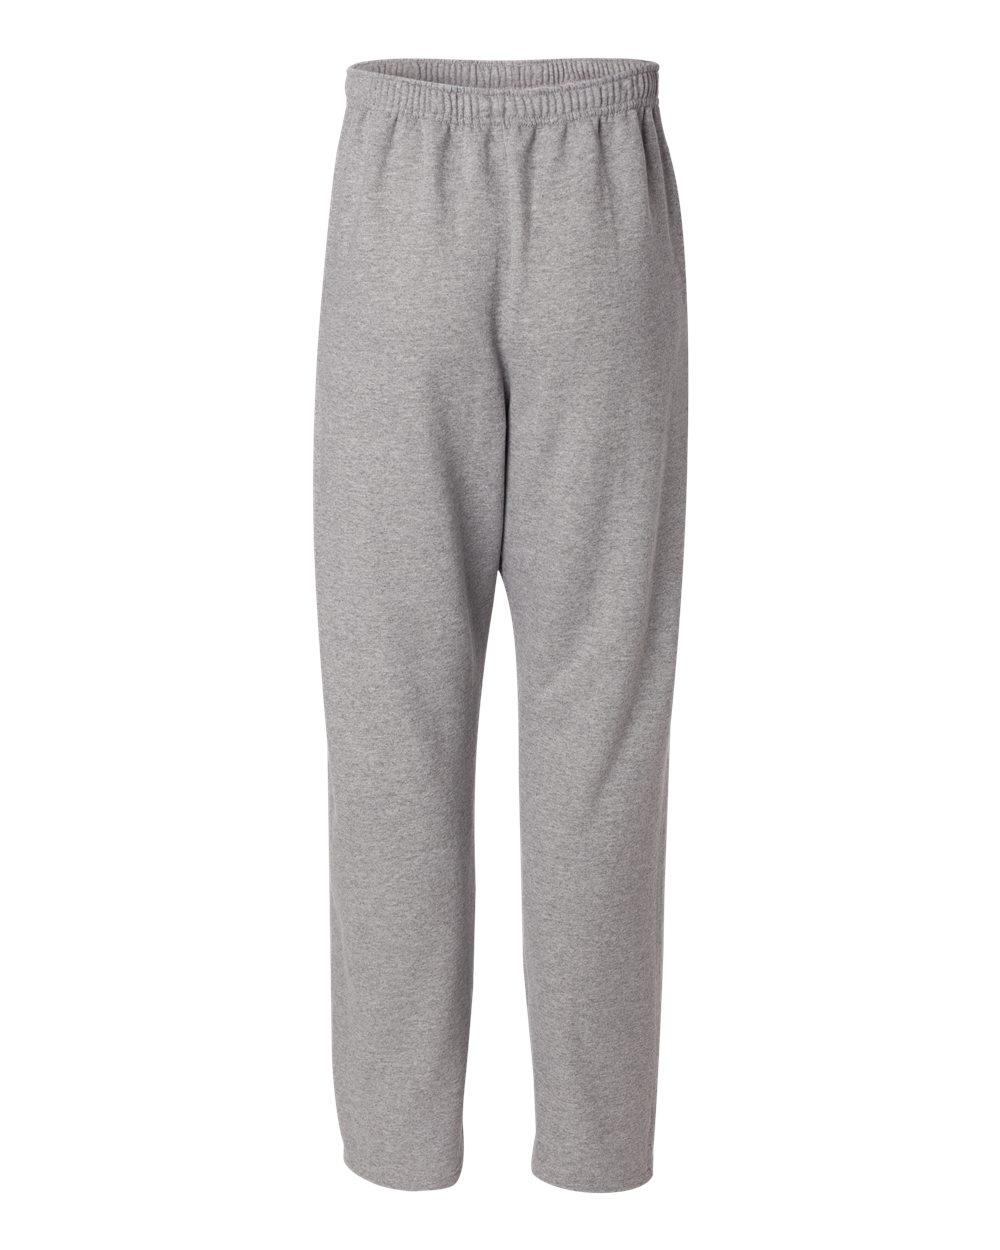 JERZEES-Mens-NuBlend-Open-Bottom-Sweatpants-with-Pockets-974MPR-up-to-3XL thumbnail 22